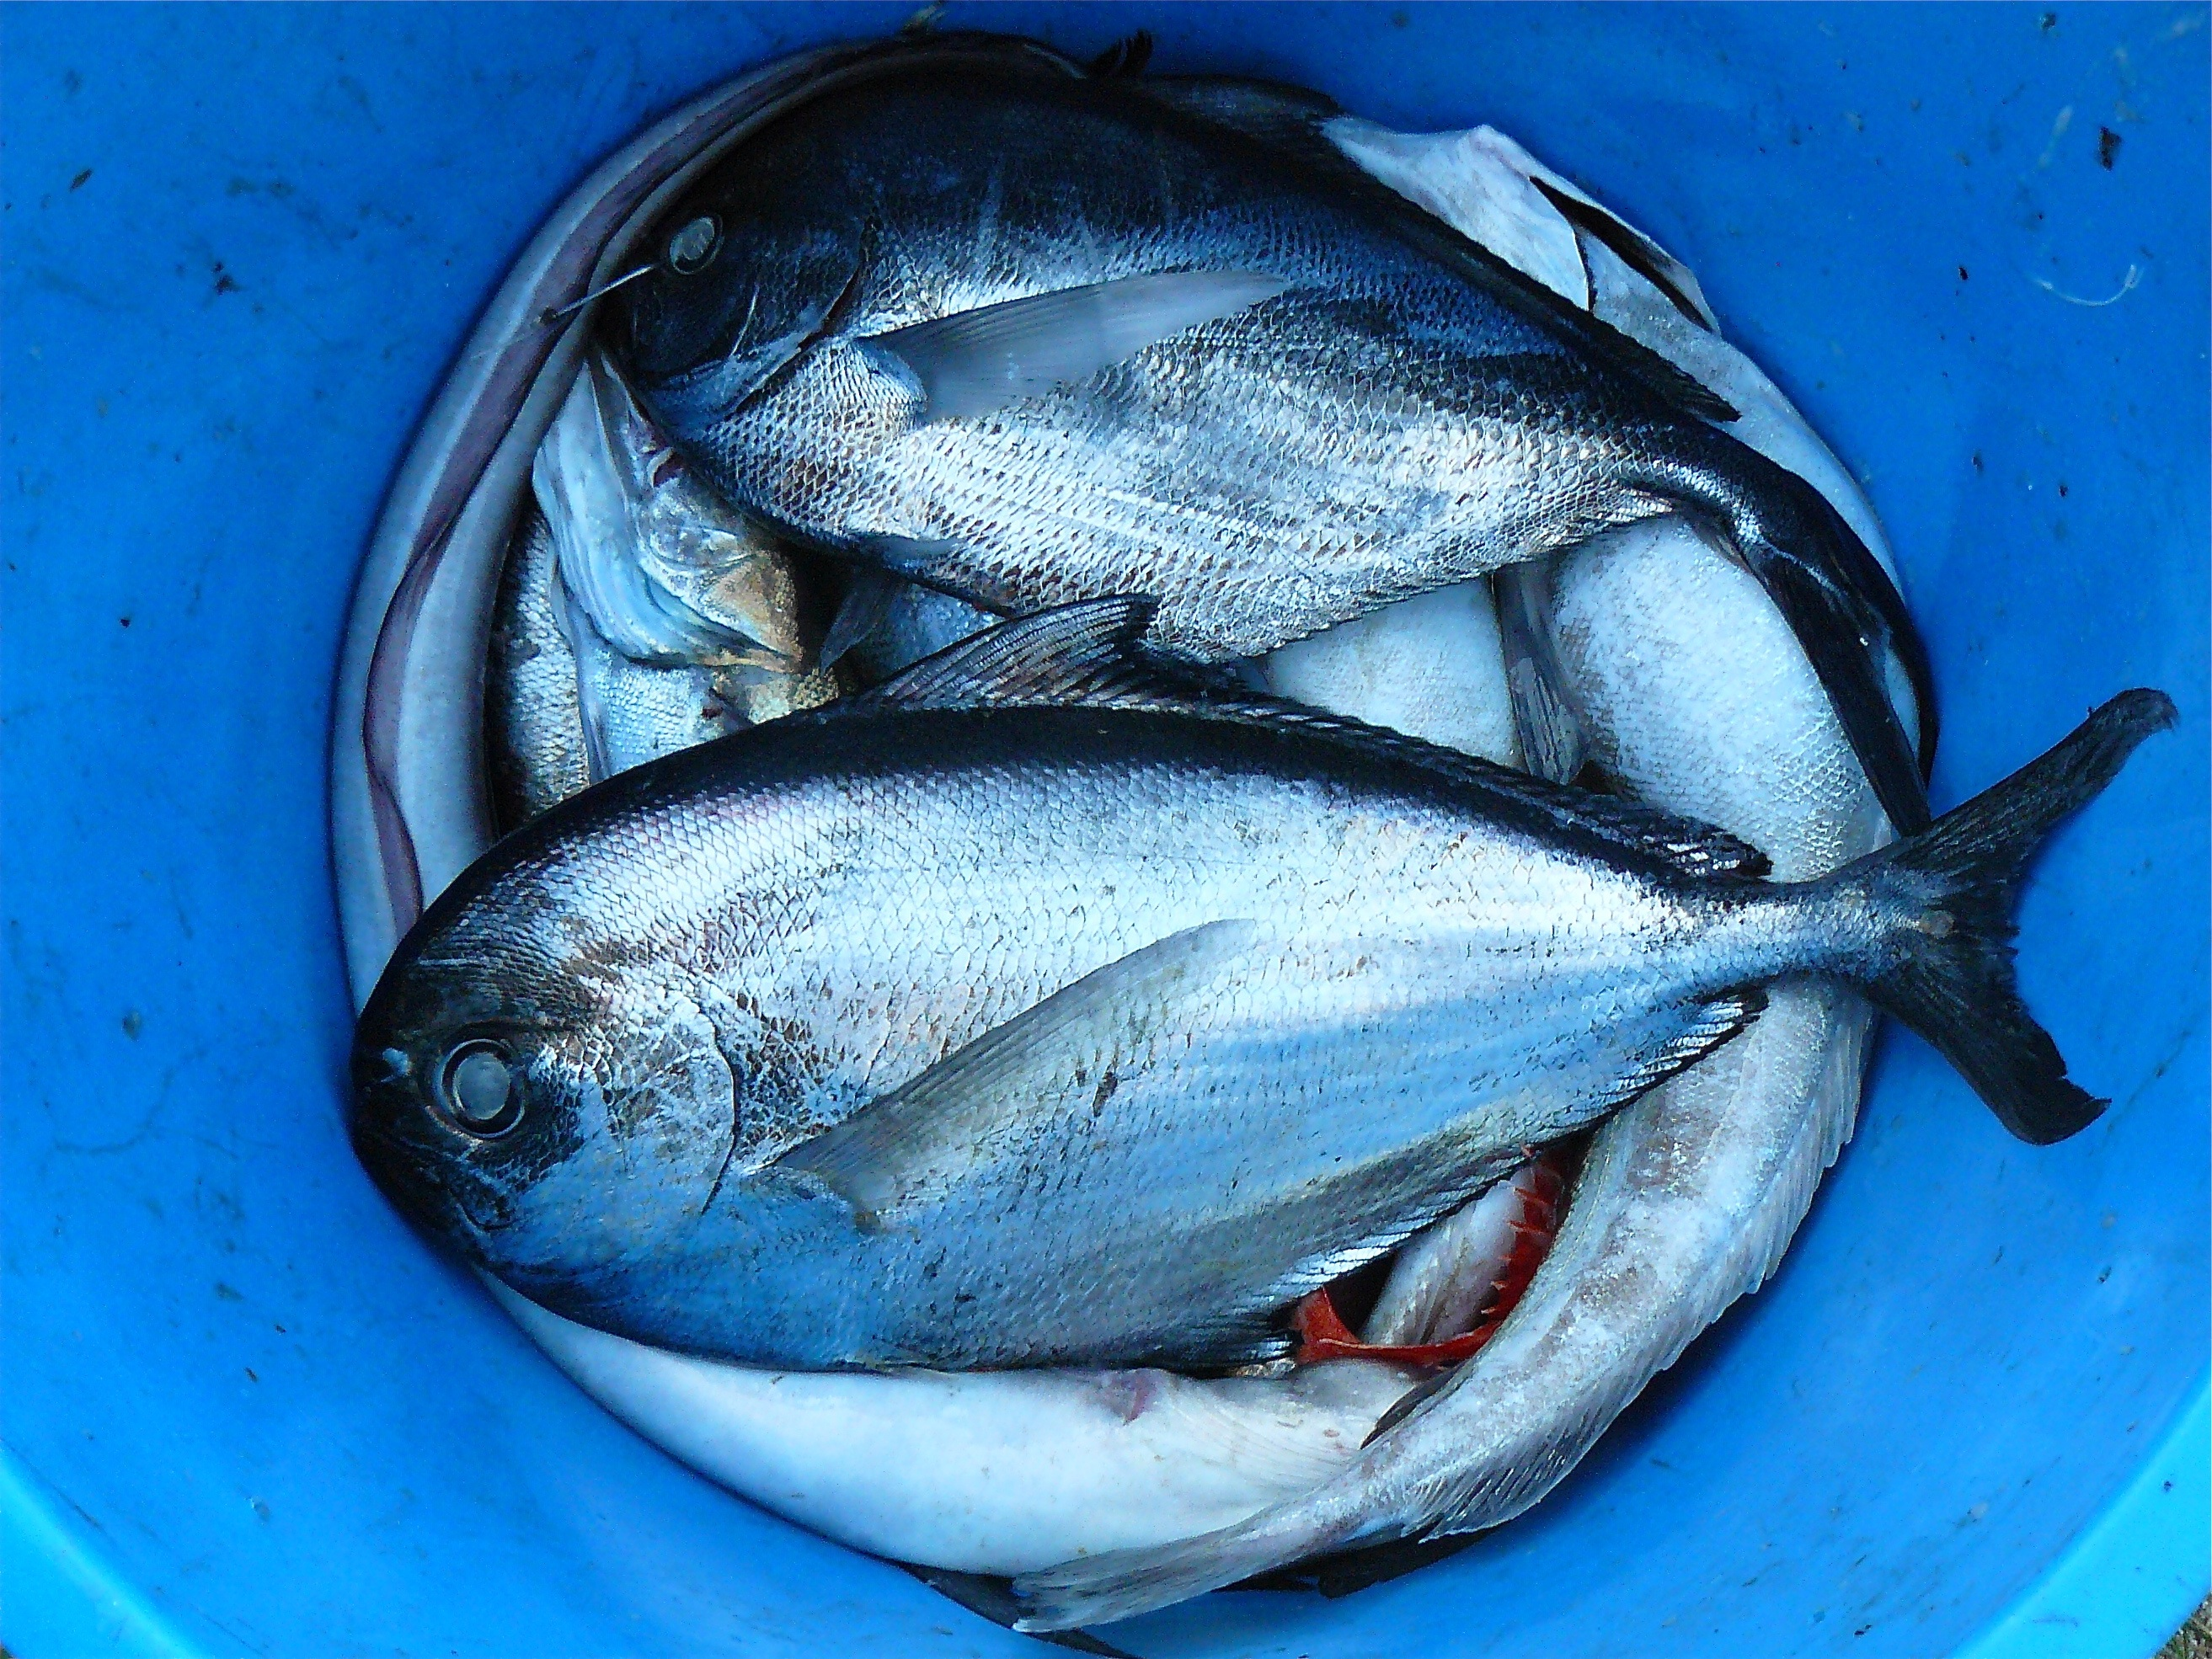 silver and black fishes inside blue plastic container free stock